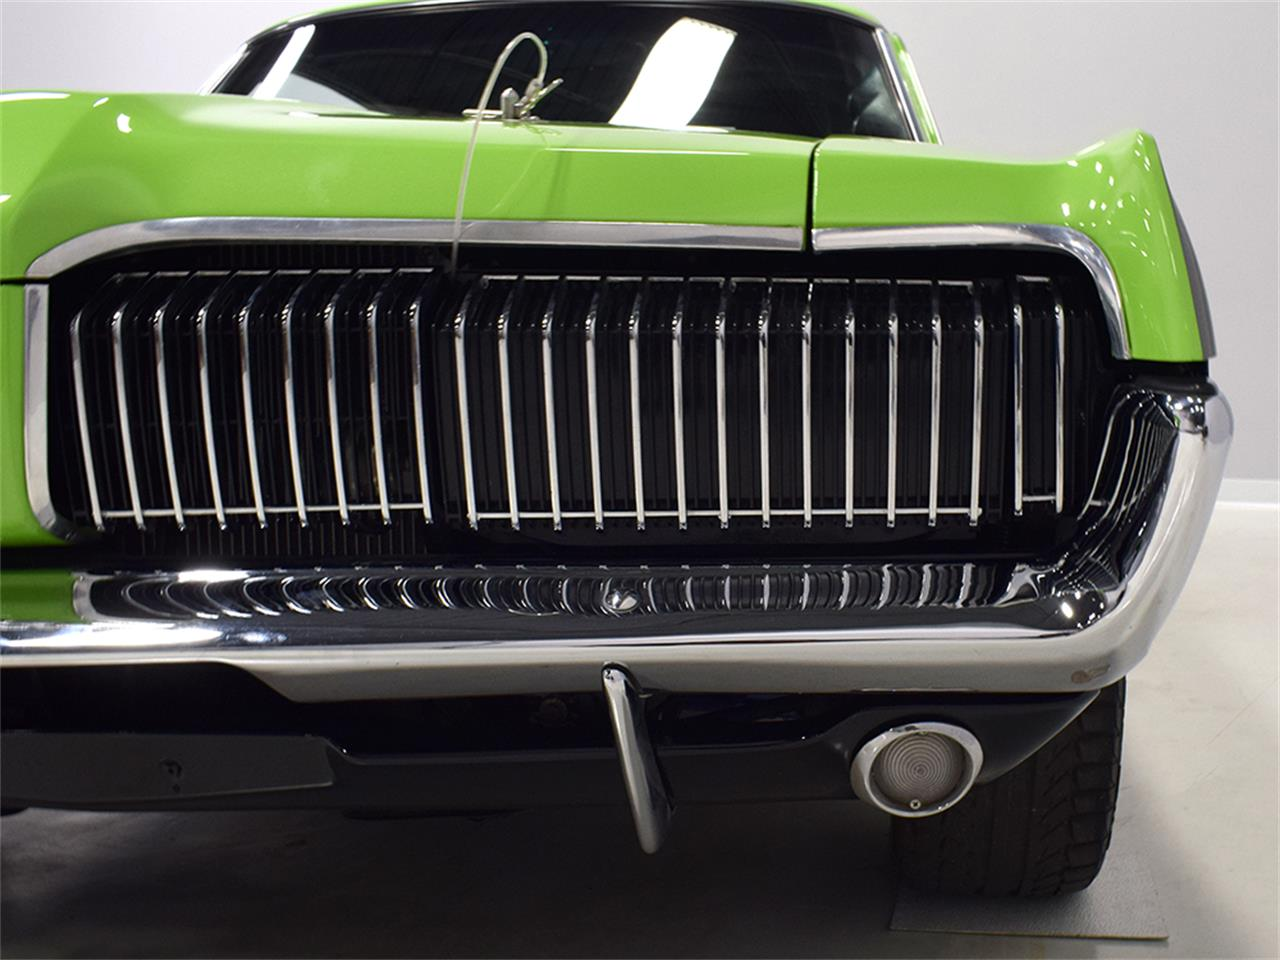 Large Picture of Classic 1967 Mercury Cougar located in Ohio - $49,900.00 Offered by Harwood Motors, LTD. - MH5X